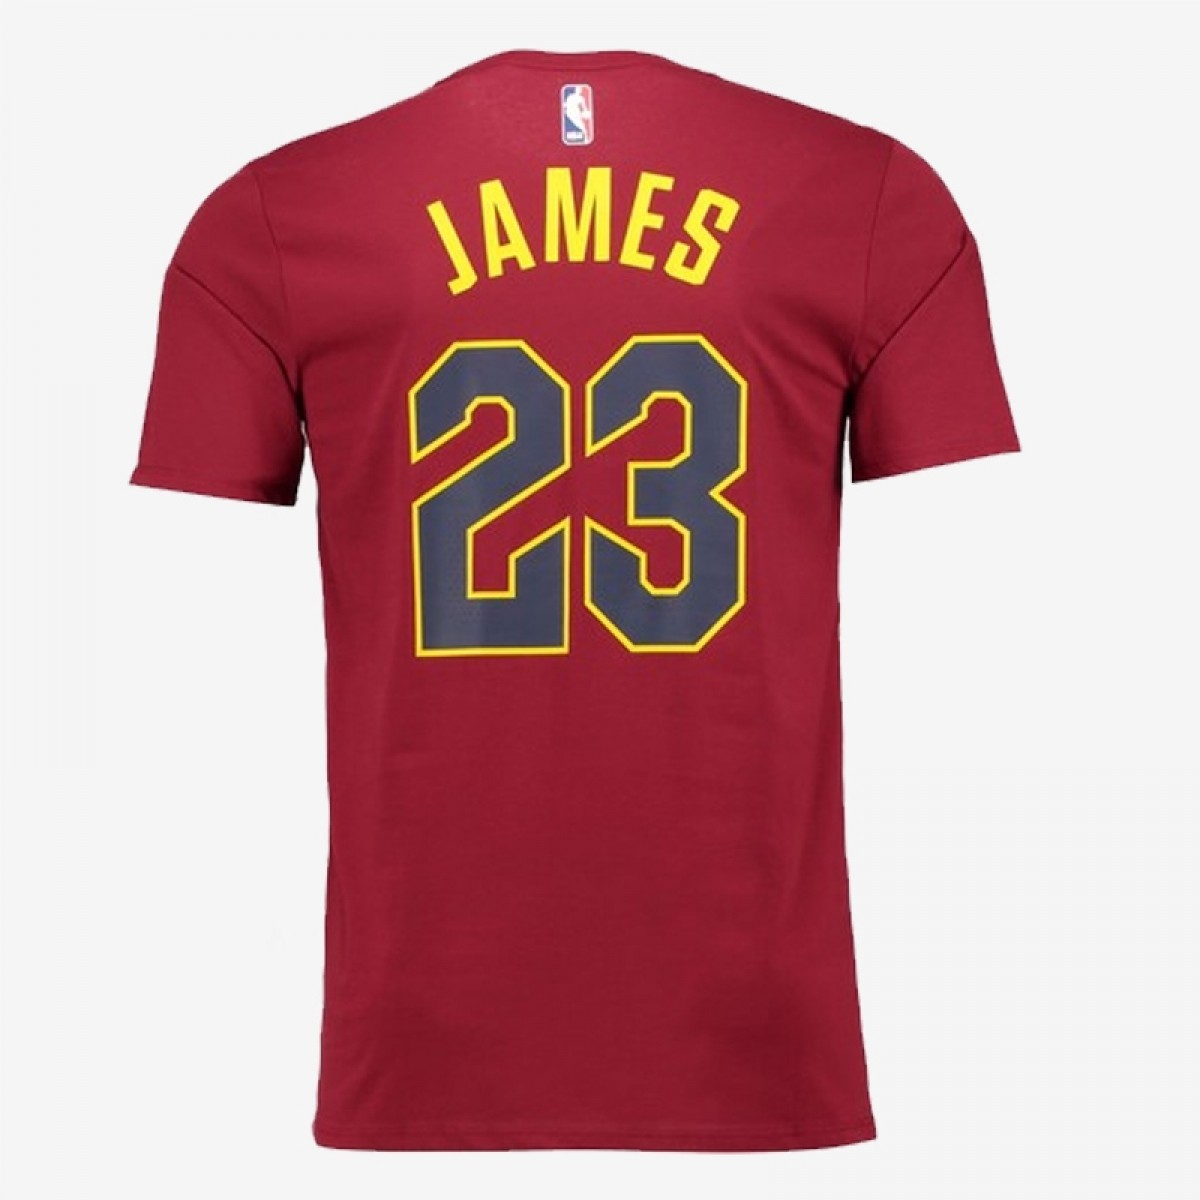 Nike Junior NBA Cleveland Cavaliers Nick Name Tee James 'City Edition'  EZ2B7NAAC-CCLJ